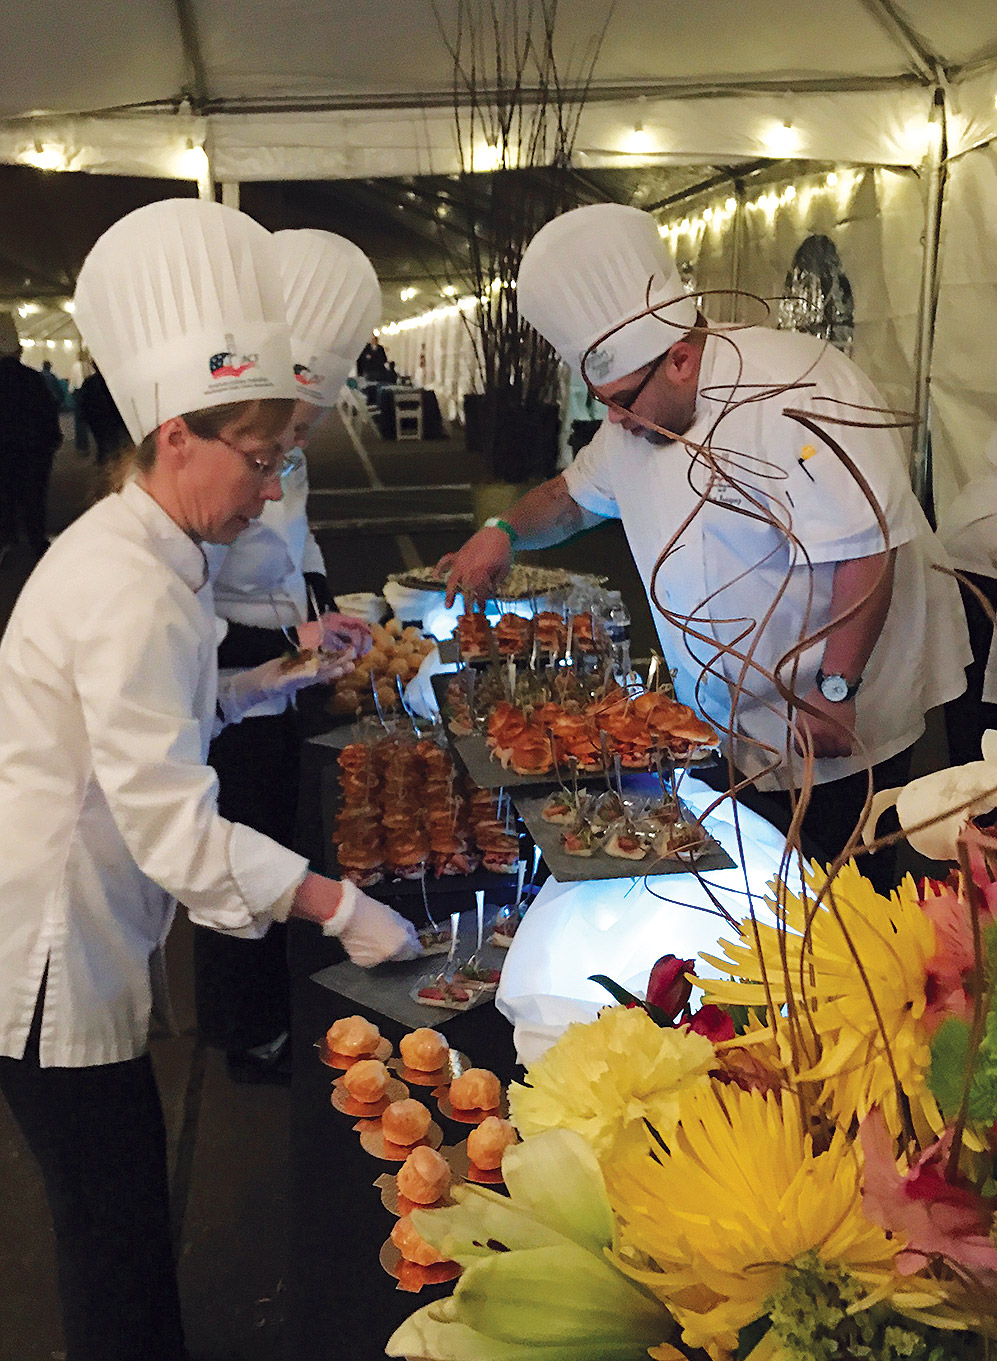 SVC Culinary Arts Chef Instructor Shawnna Poynter (left) and Department Co-Chair Gilbert Rodriguez (right) put the final touches on hors d' oeuvres prepared by SVC's Culinary team for Governor Inslee's Inaugural Ball.